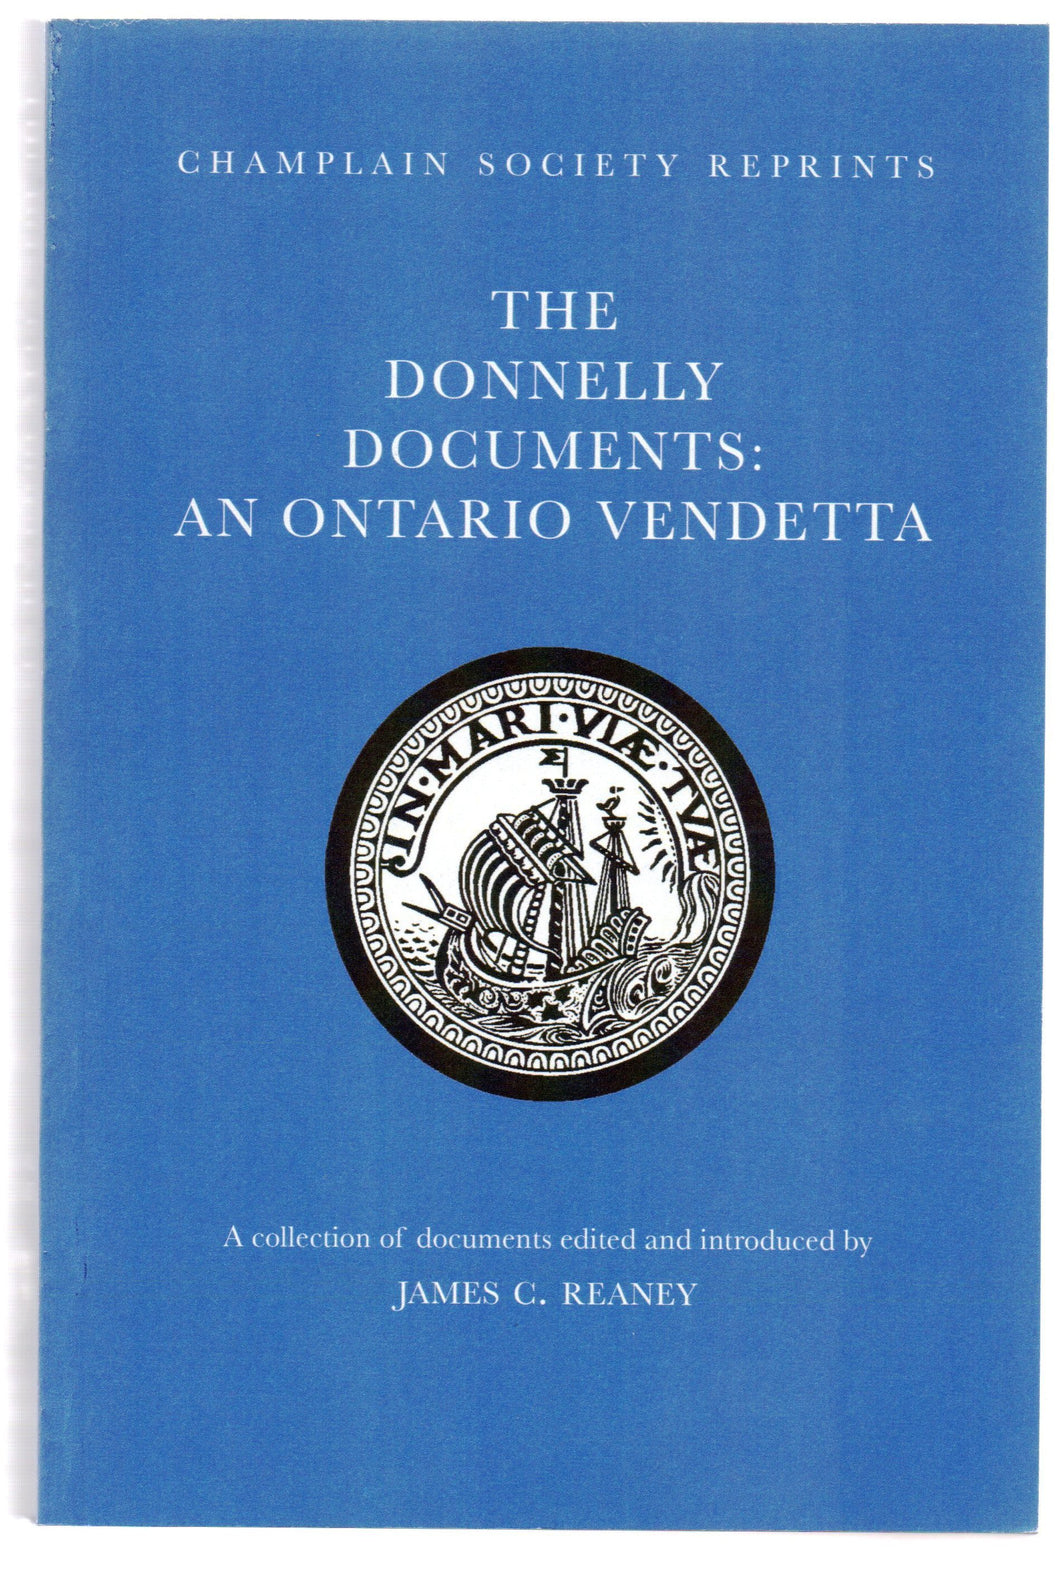 The Donnelly Documents: An Ontario Vendetta